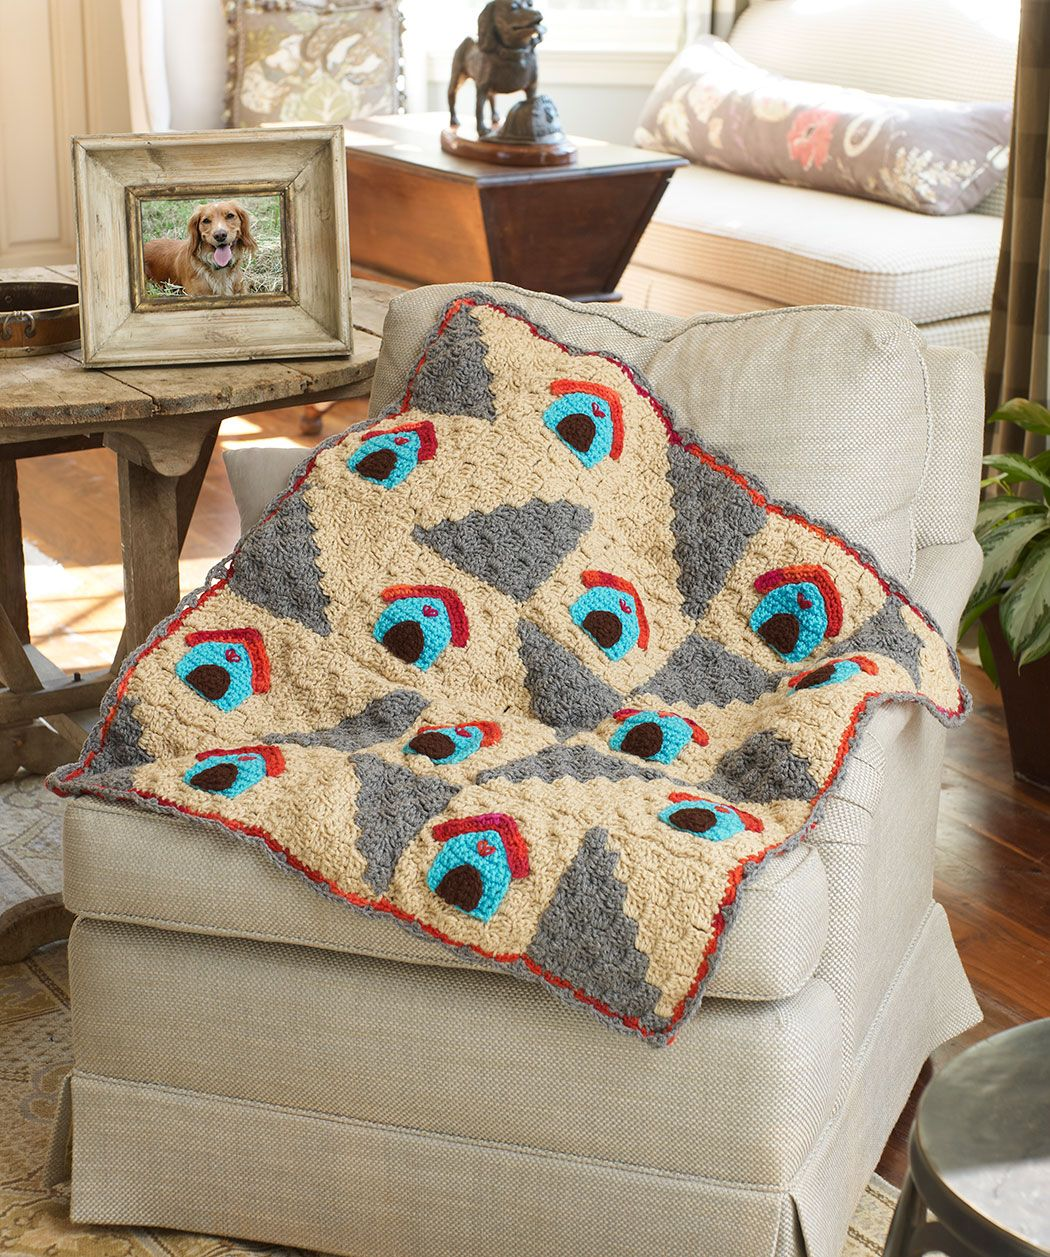 A Dog's Home Throw Free Crochet Pattern for a dog